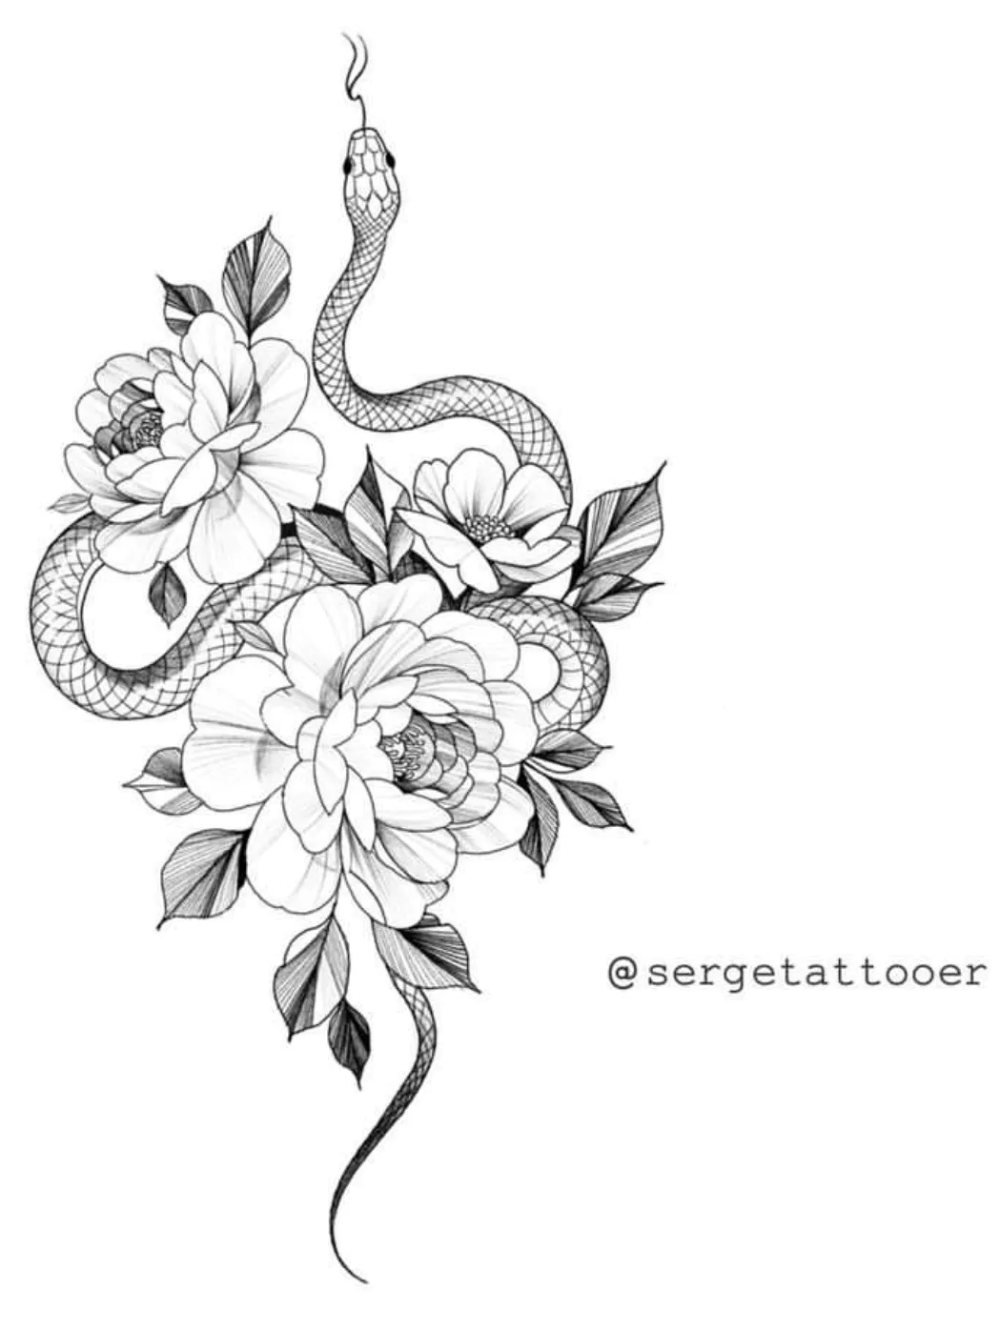 Rose Sketch Rose Clipart Gray Black Sketch Png And Vector With Transparent Background For Free Download Rose Drawing Tattoo Rose Tattoos Hip Tattoo